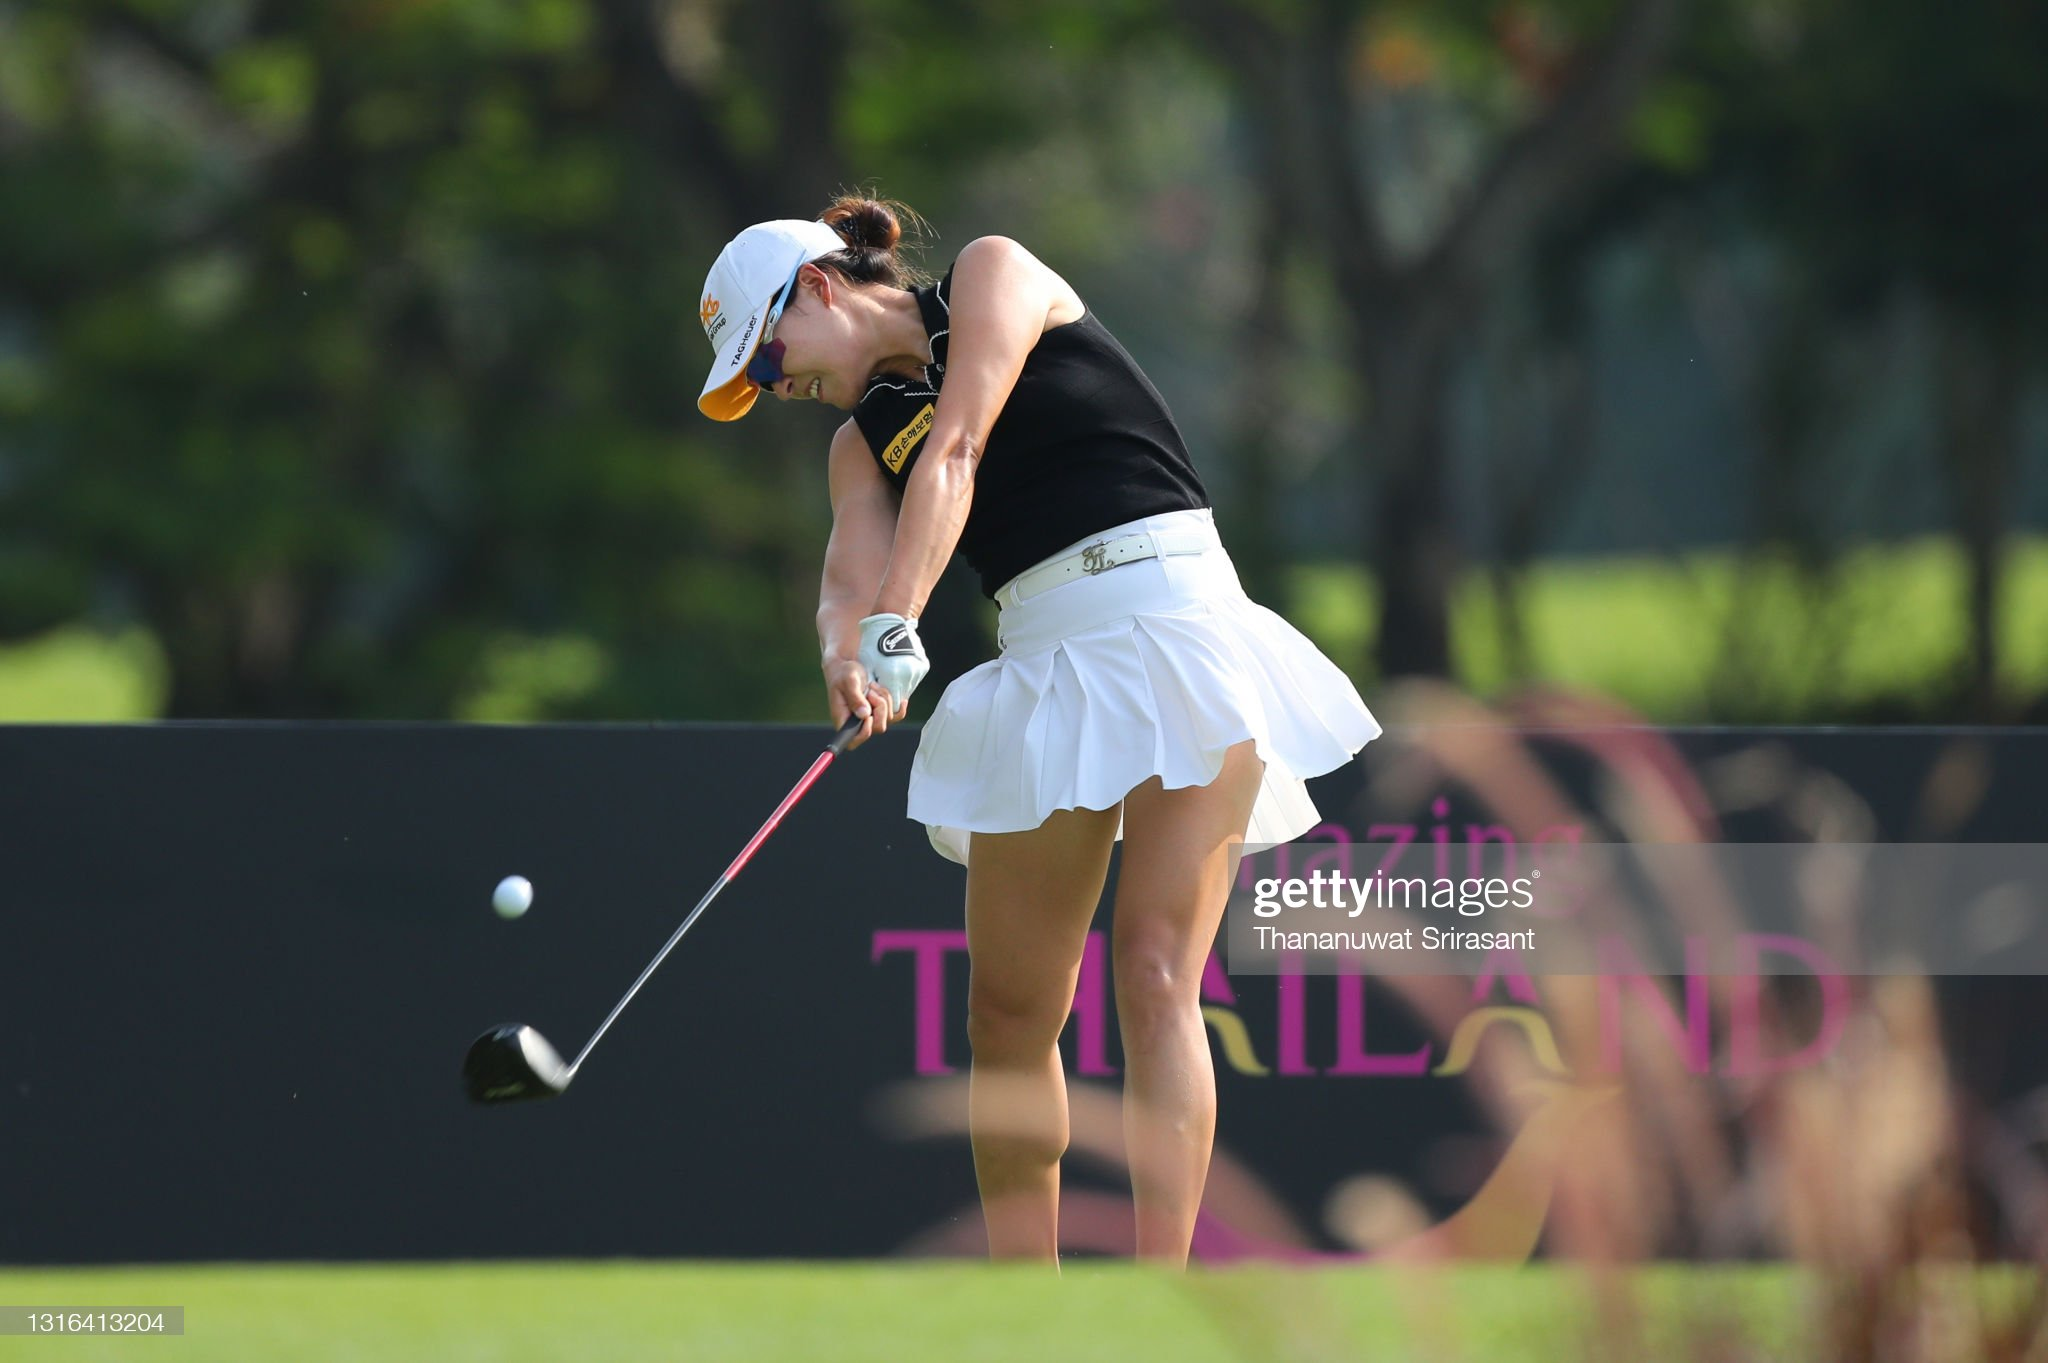 https://media.gettyimages.com/photos/in-gee-chun-of-republic-of-korea-tees-off-during-the-practice-round-picture-id1316413204?s=2048x2048